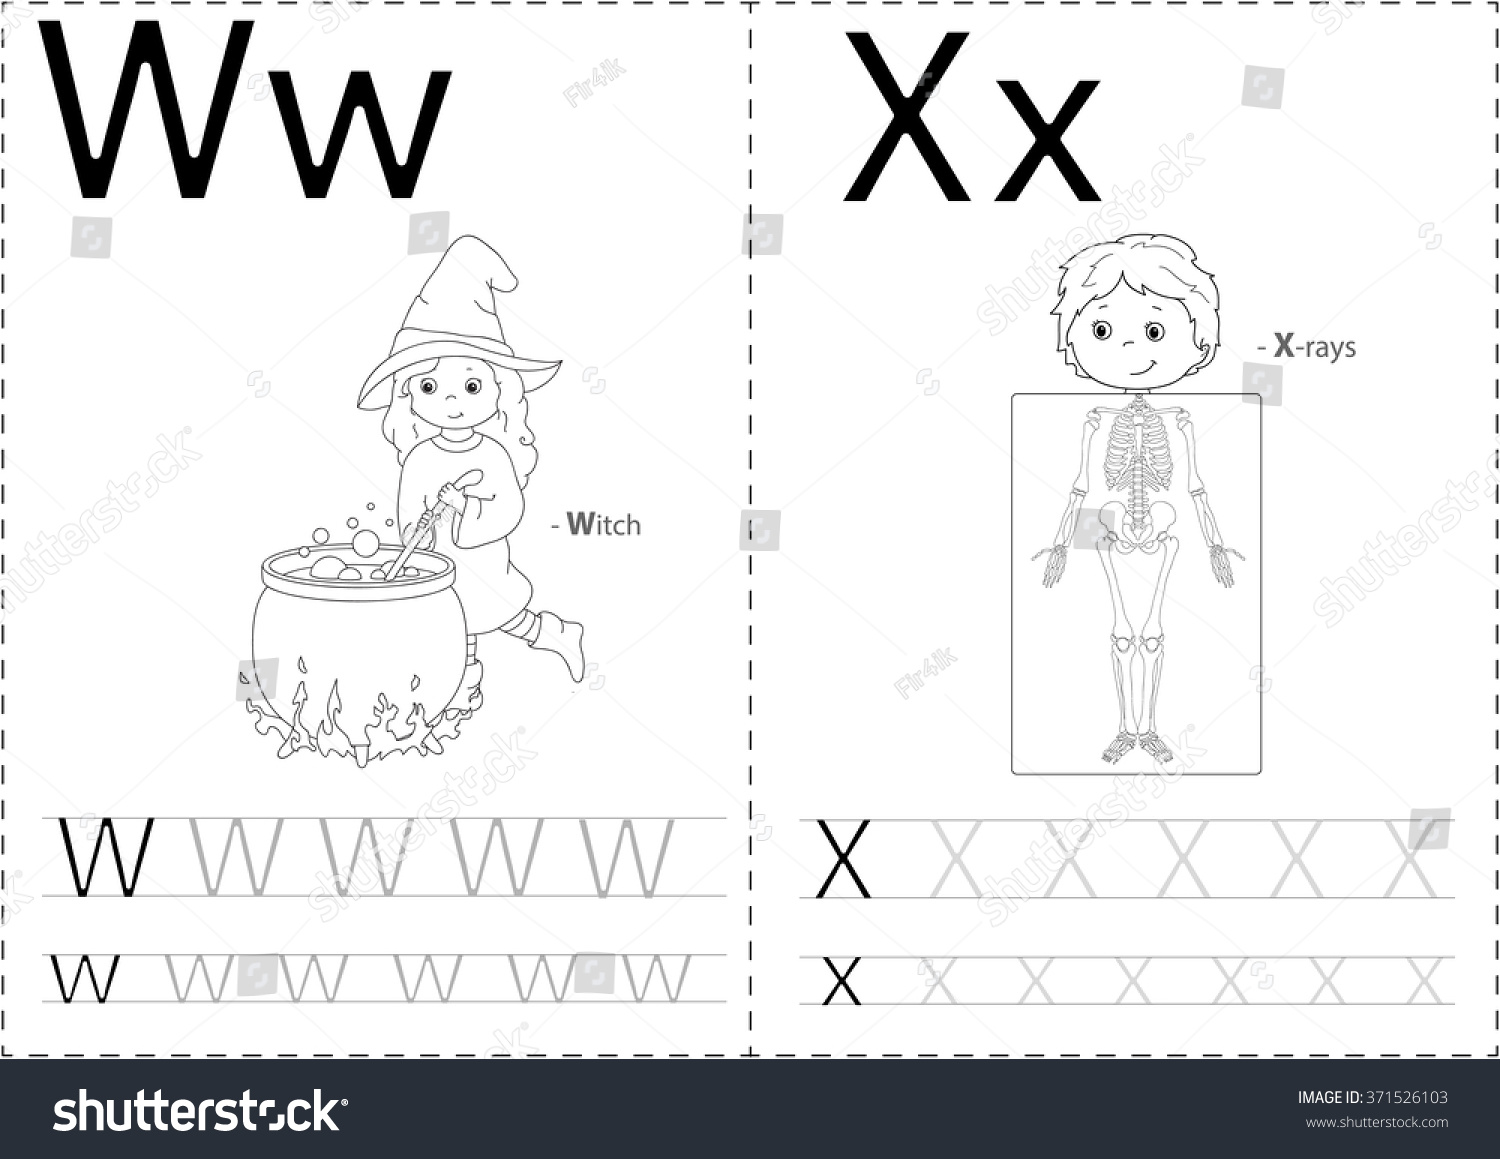 Cartoon Witch And X Rays Alphabet Tracing Worksheet